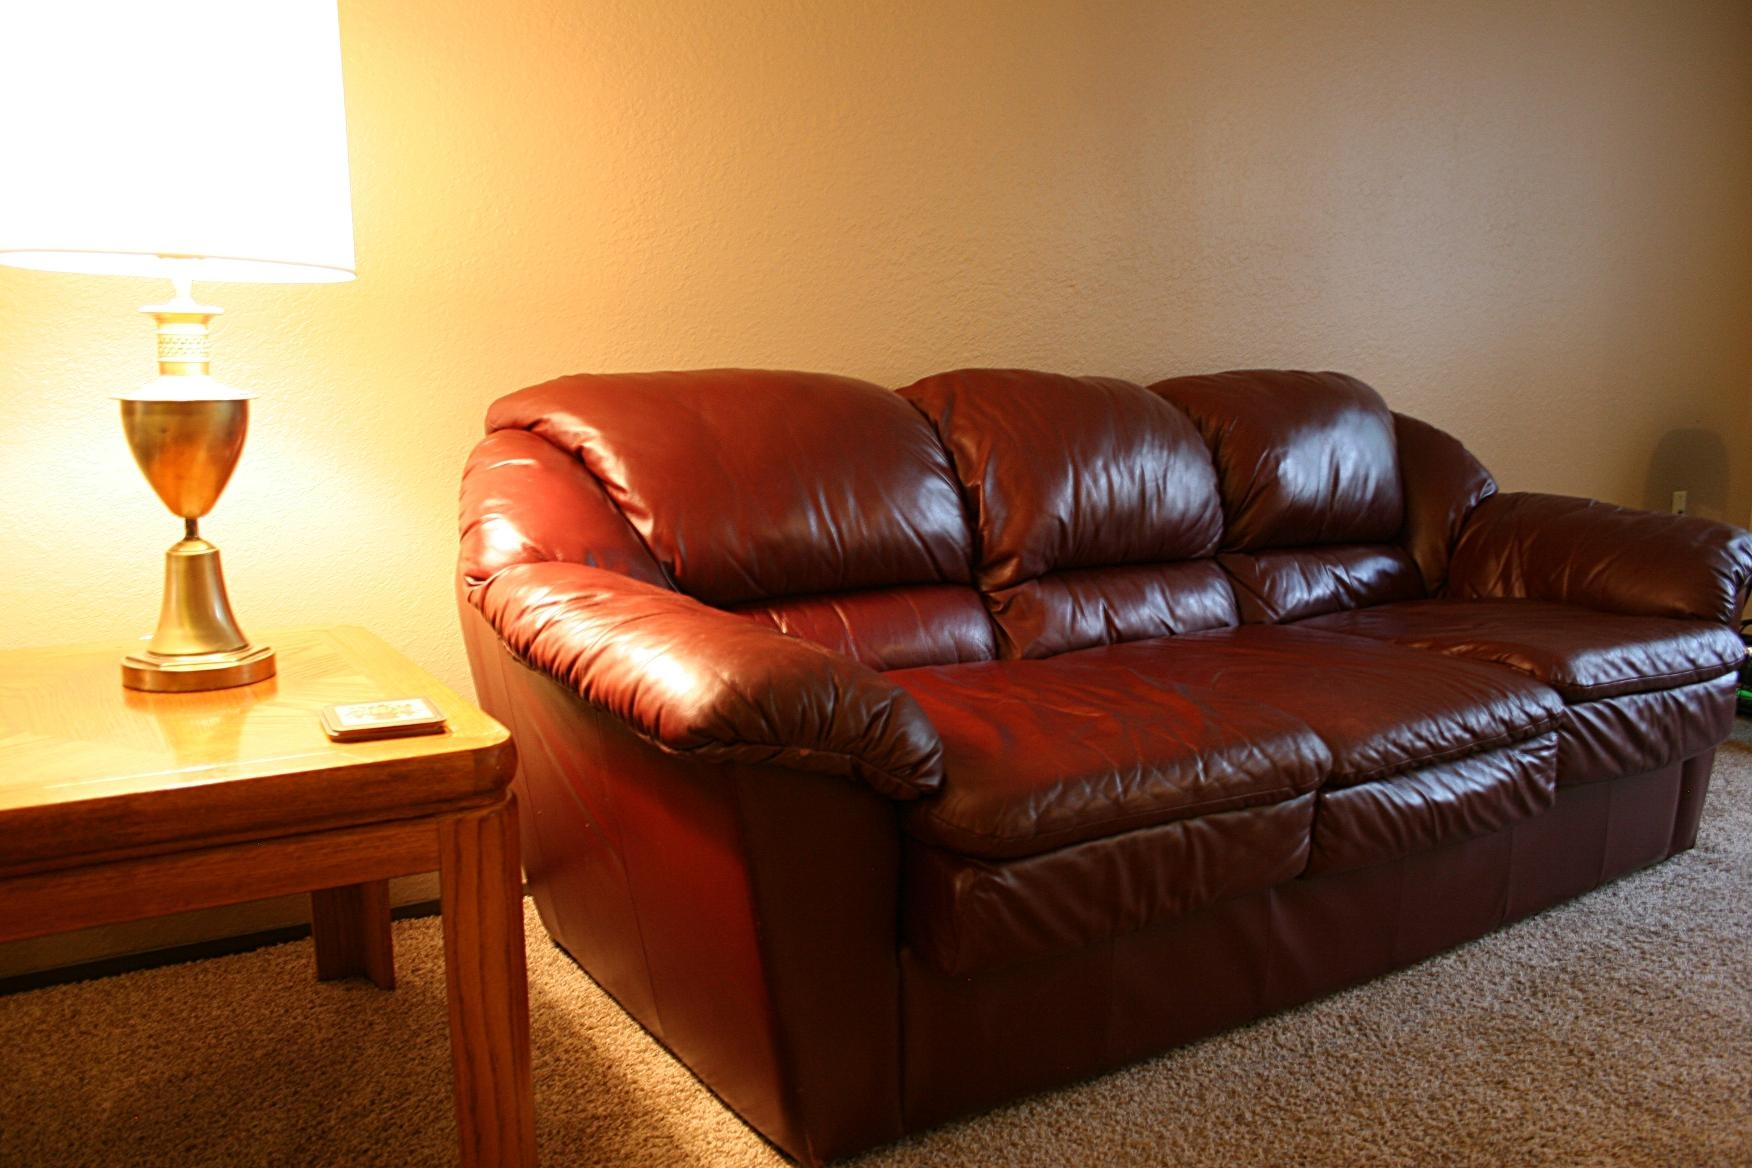 Craigslist Leather Sofa With Inspiration Hd Gallery 16884 Inside Craigslist Leather Sofa (Image 8 of 20)